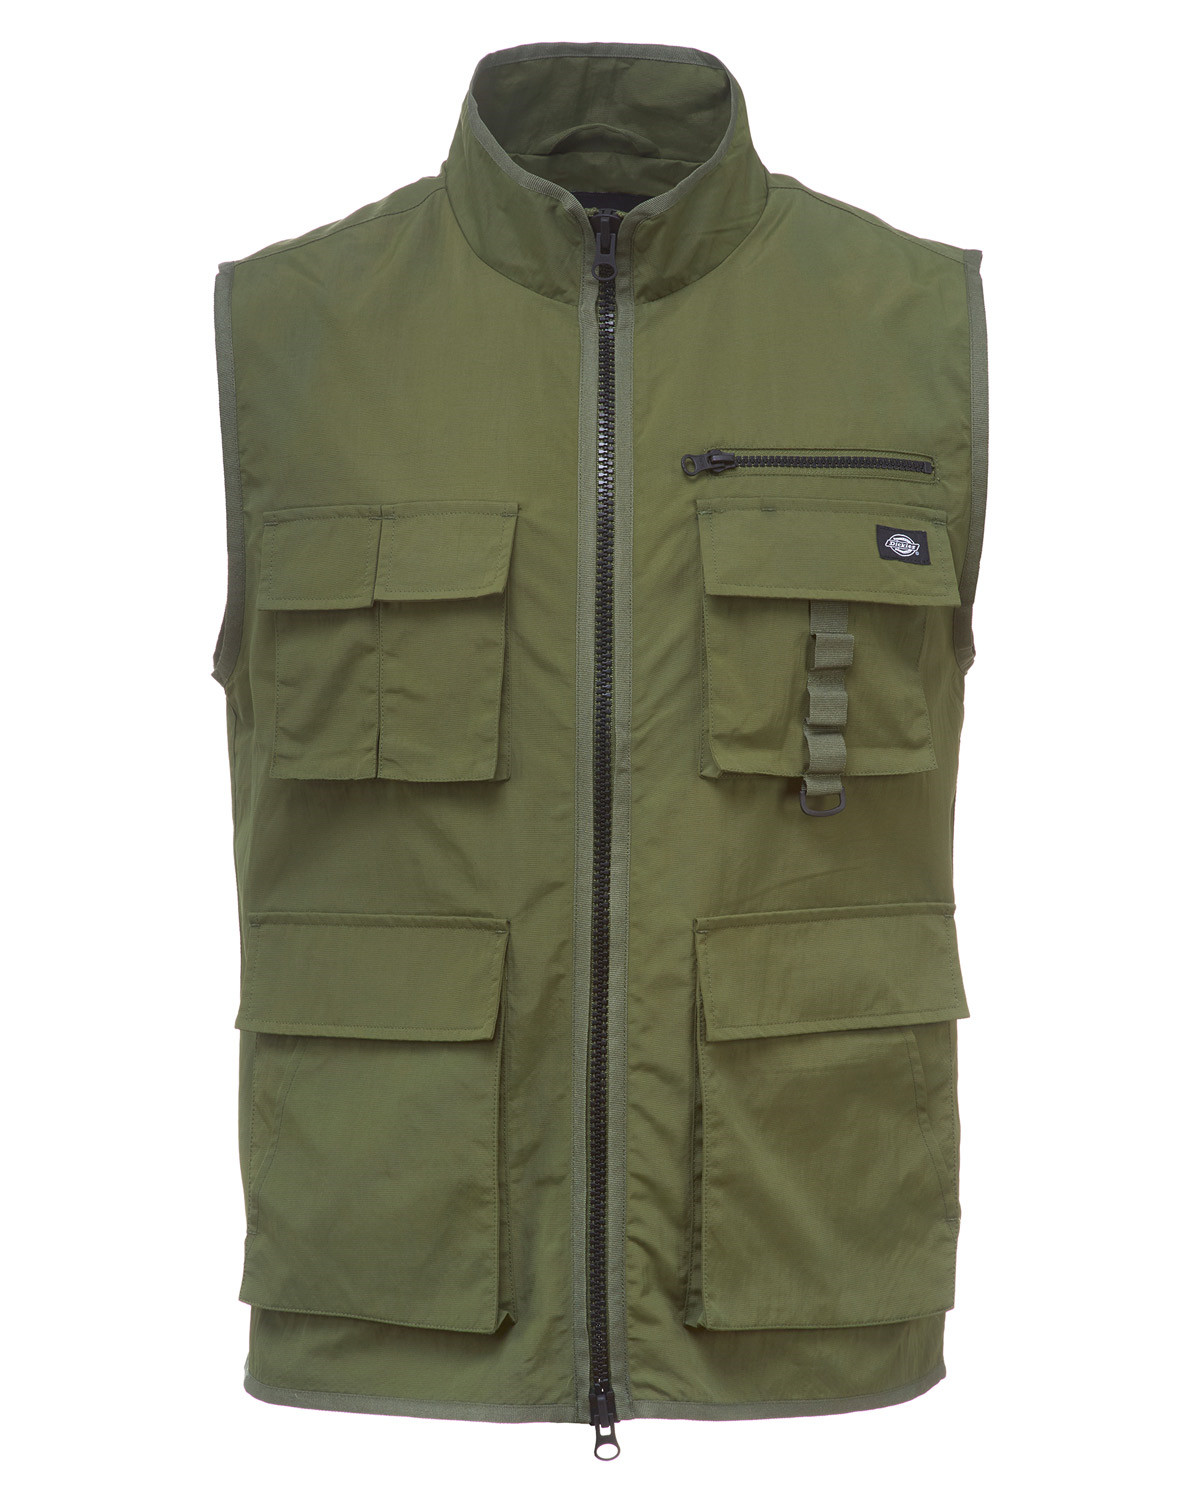 Dickies Stillmore Jacket (Army Green, S)